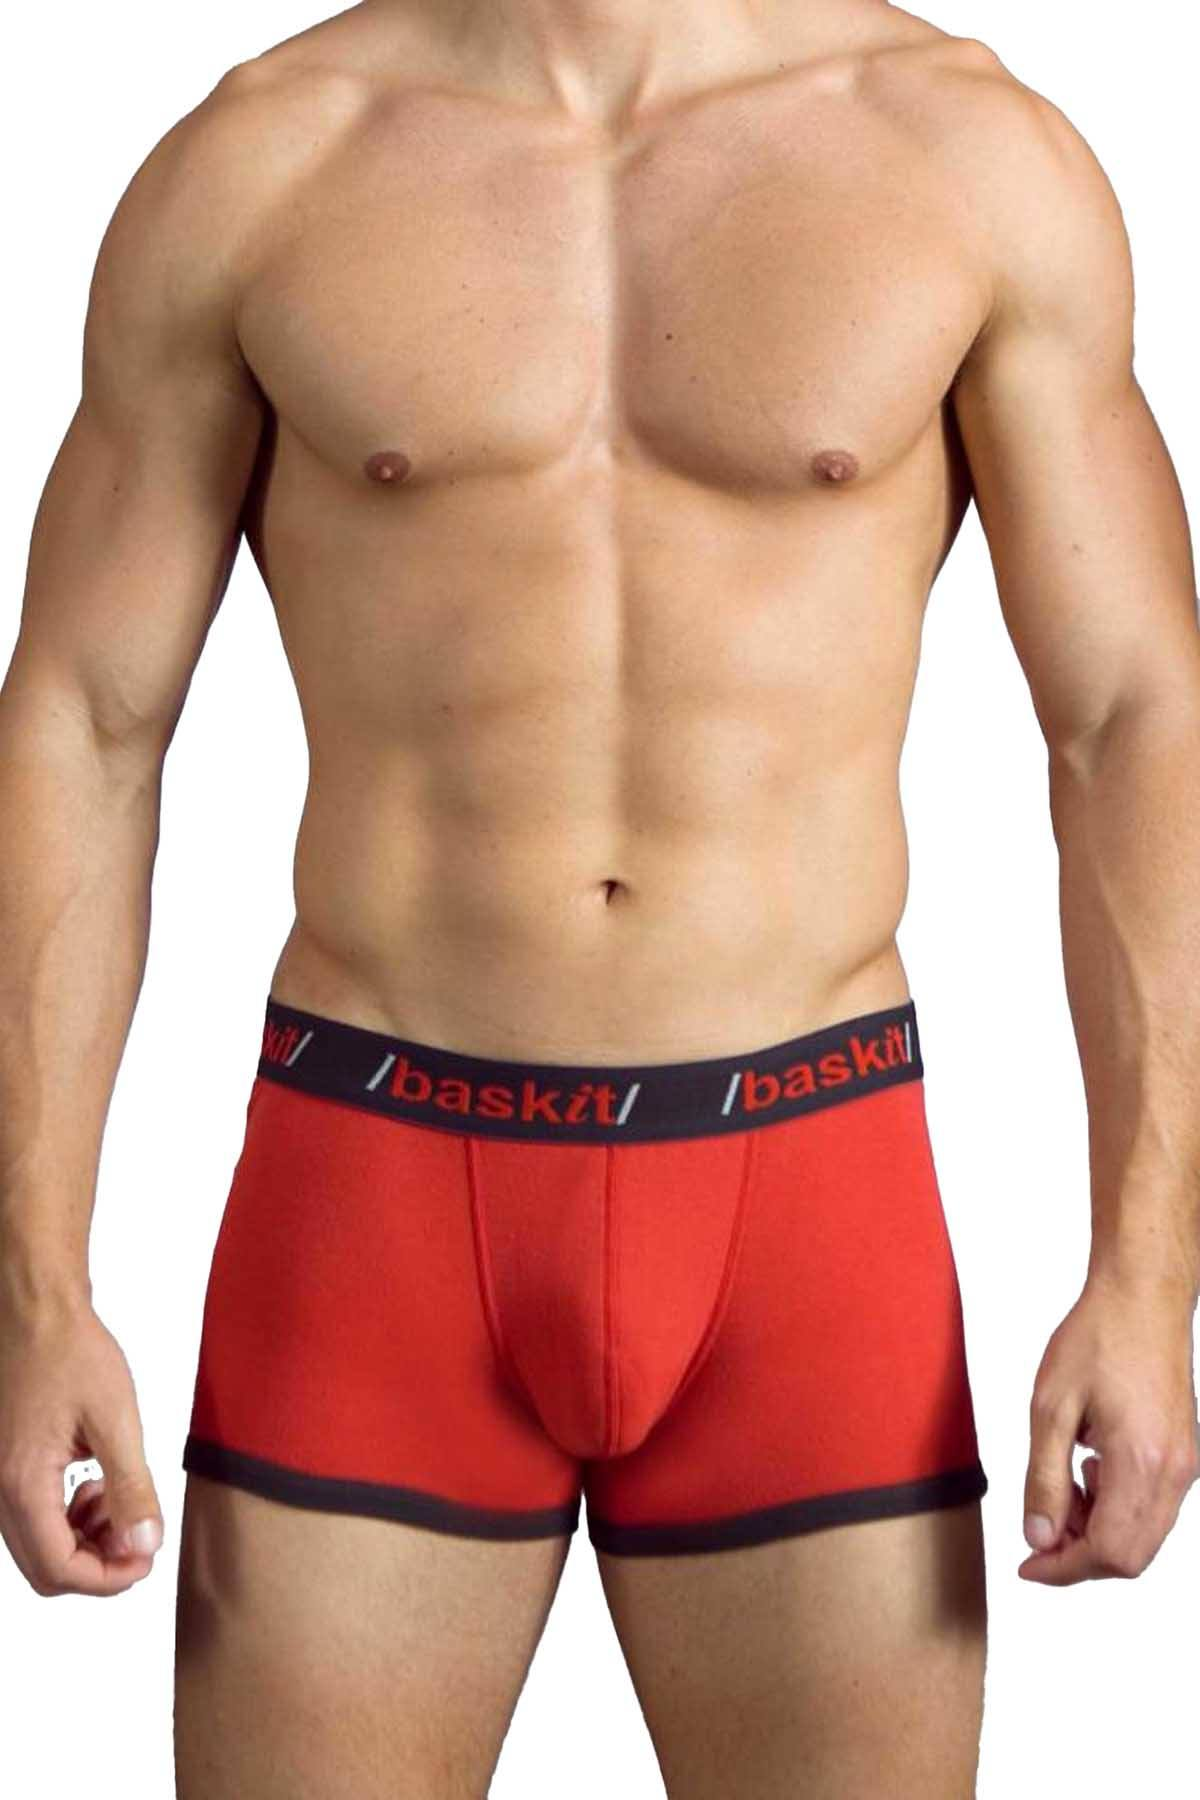 Baskit Chinese Red/Black Contrast Low-Rise Trunk